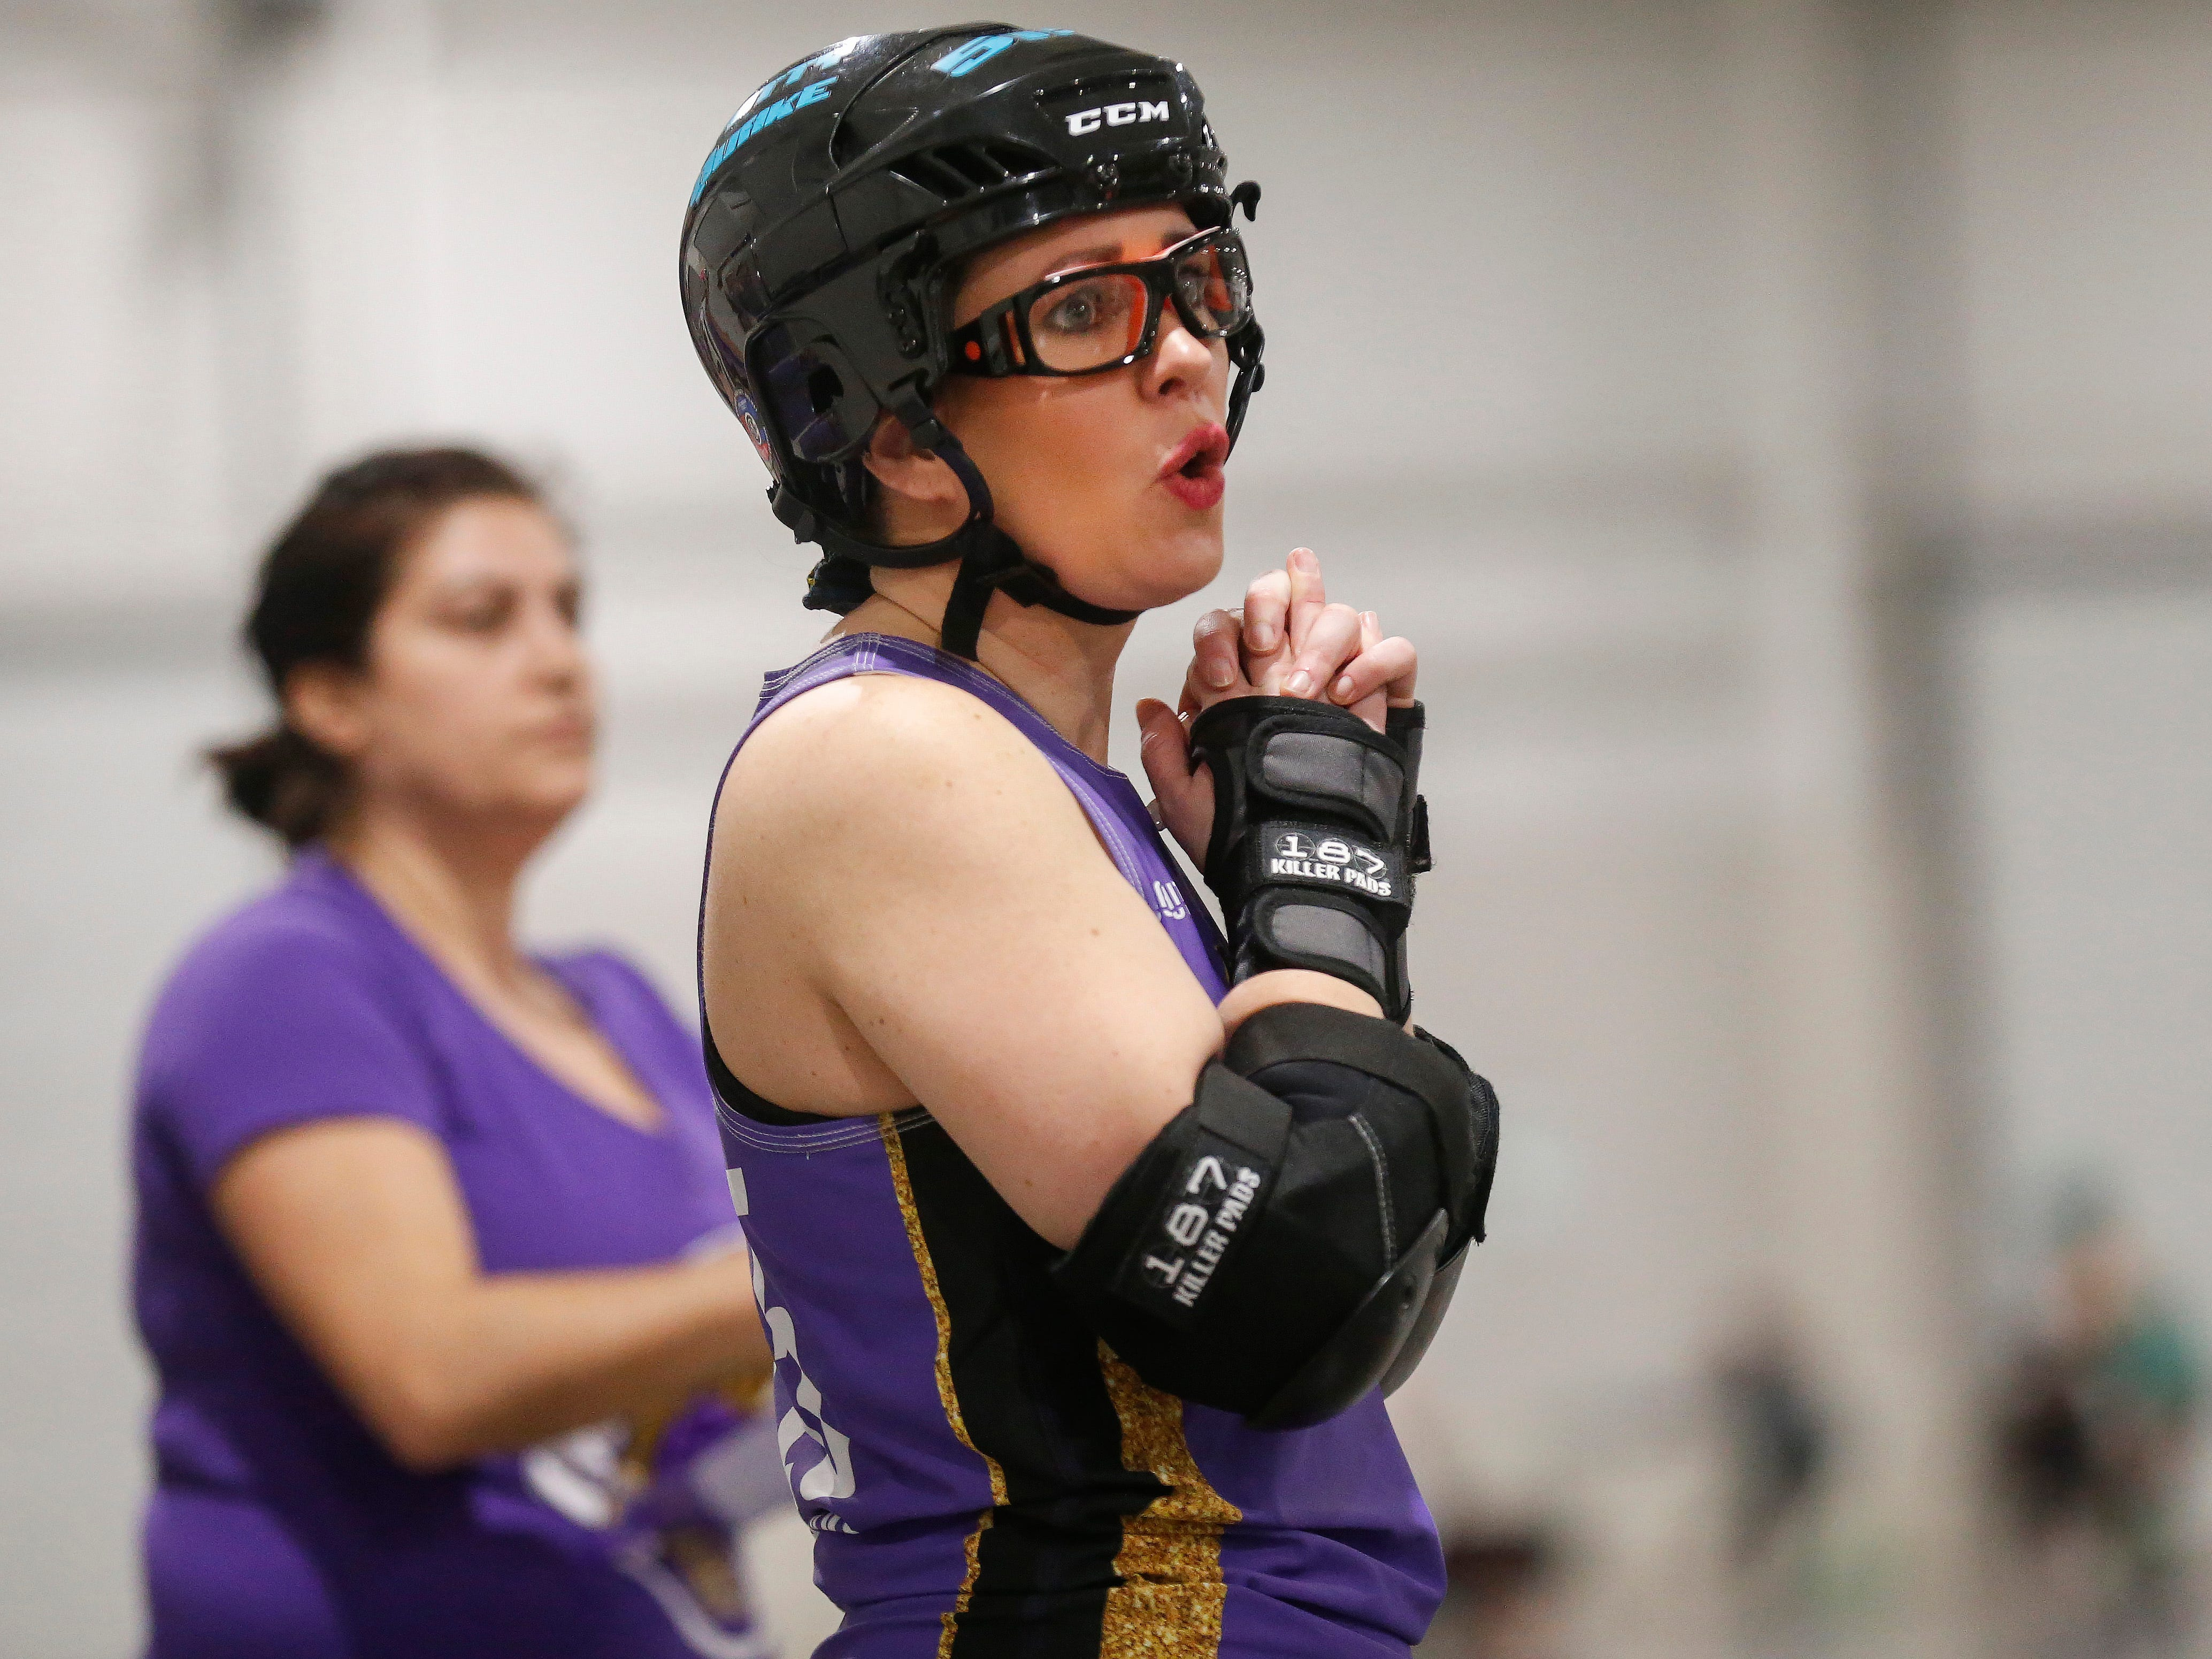 Fountain City (in  blue tops) defeated South Jersey in their first game of the 2019 Roller Derby M.A.D.E. Nationals at the Ozark Empire Fairgrounds on Saturday, Feb. 2, 2019.